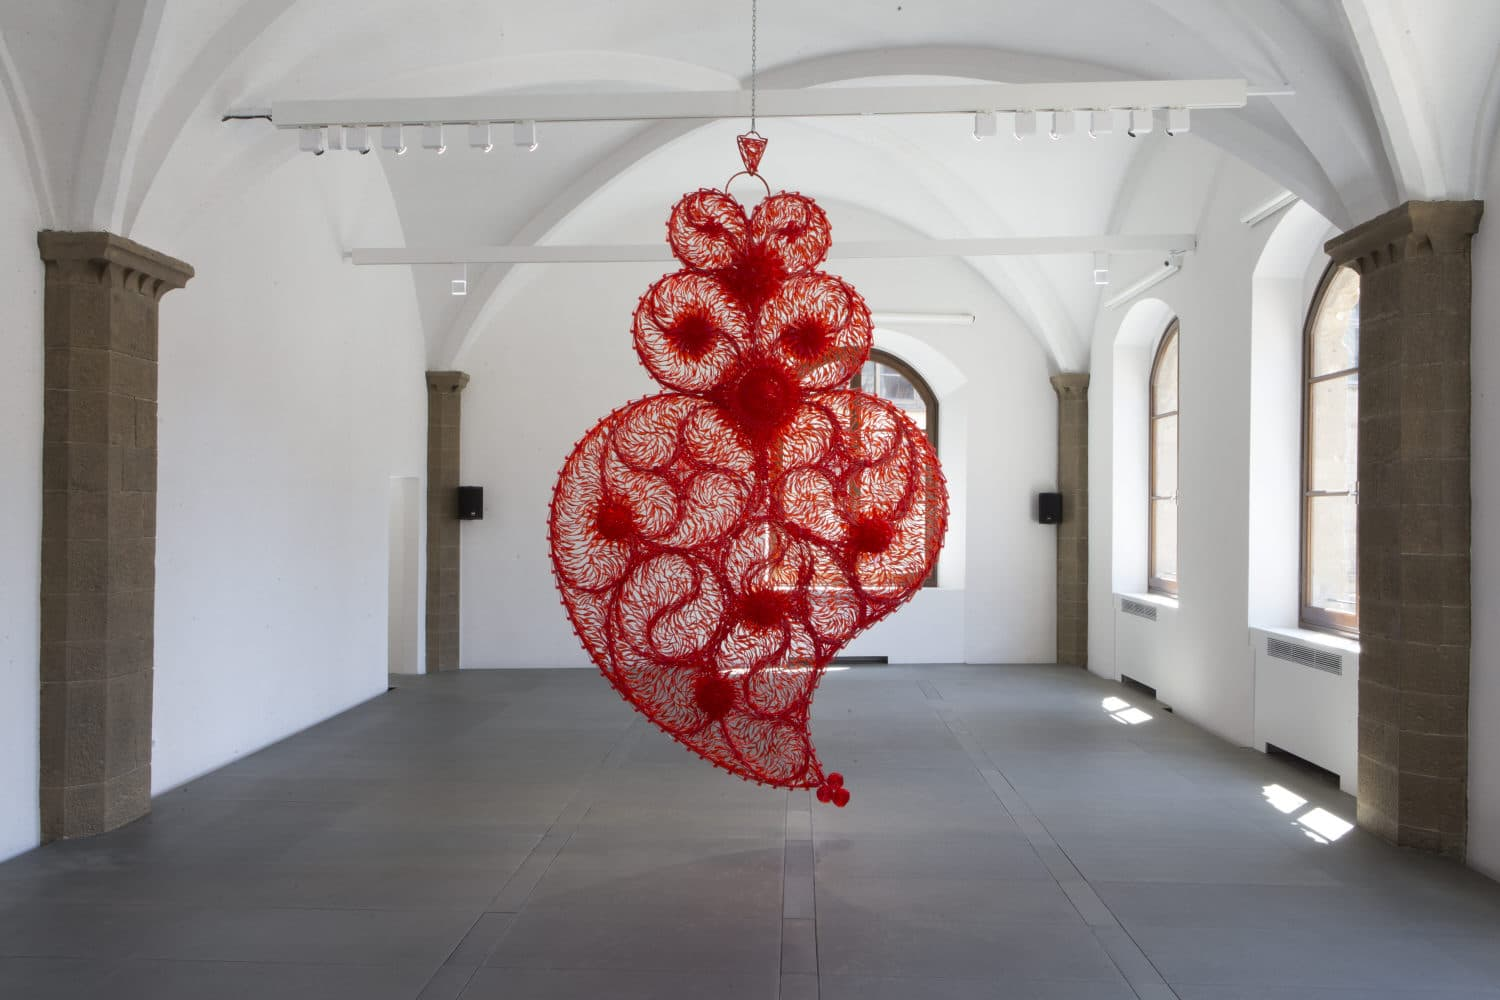 Opere D Arte Amore 5 contemporary art works that tell about love | acrimonia